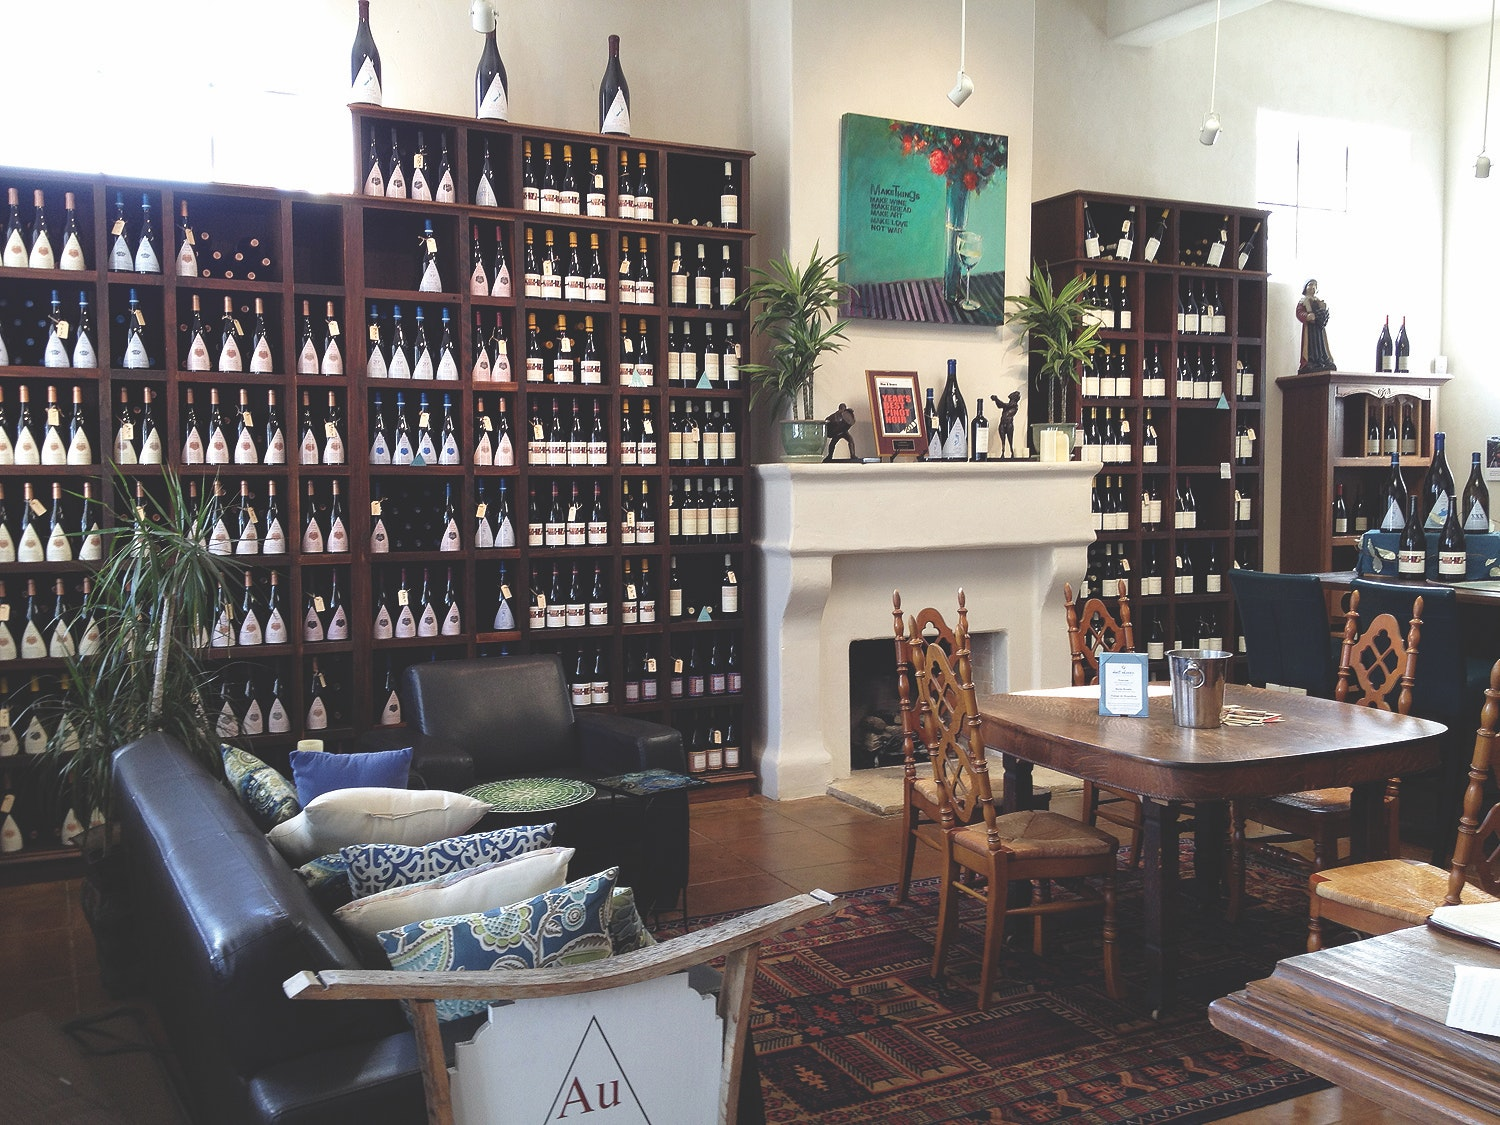 The tasting room at Au Bon Climat doubles as a wine library.